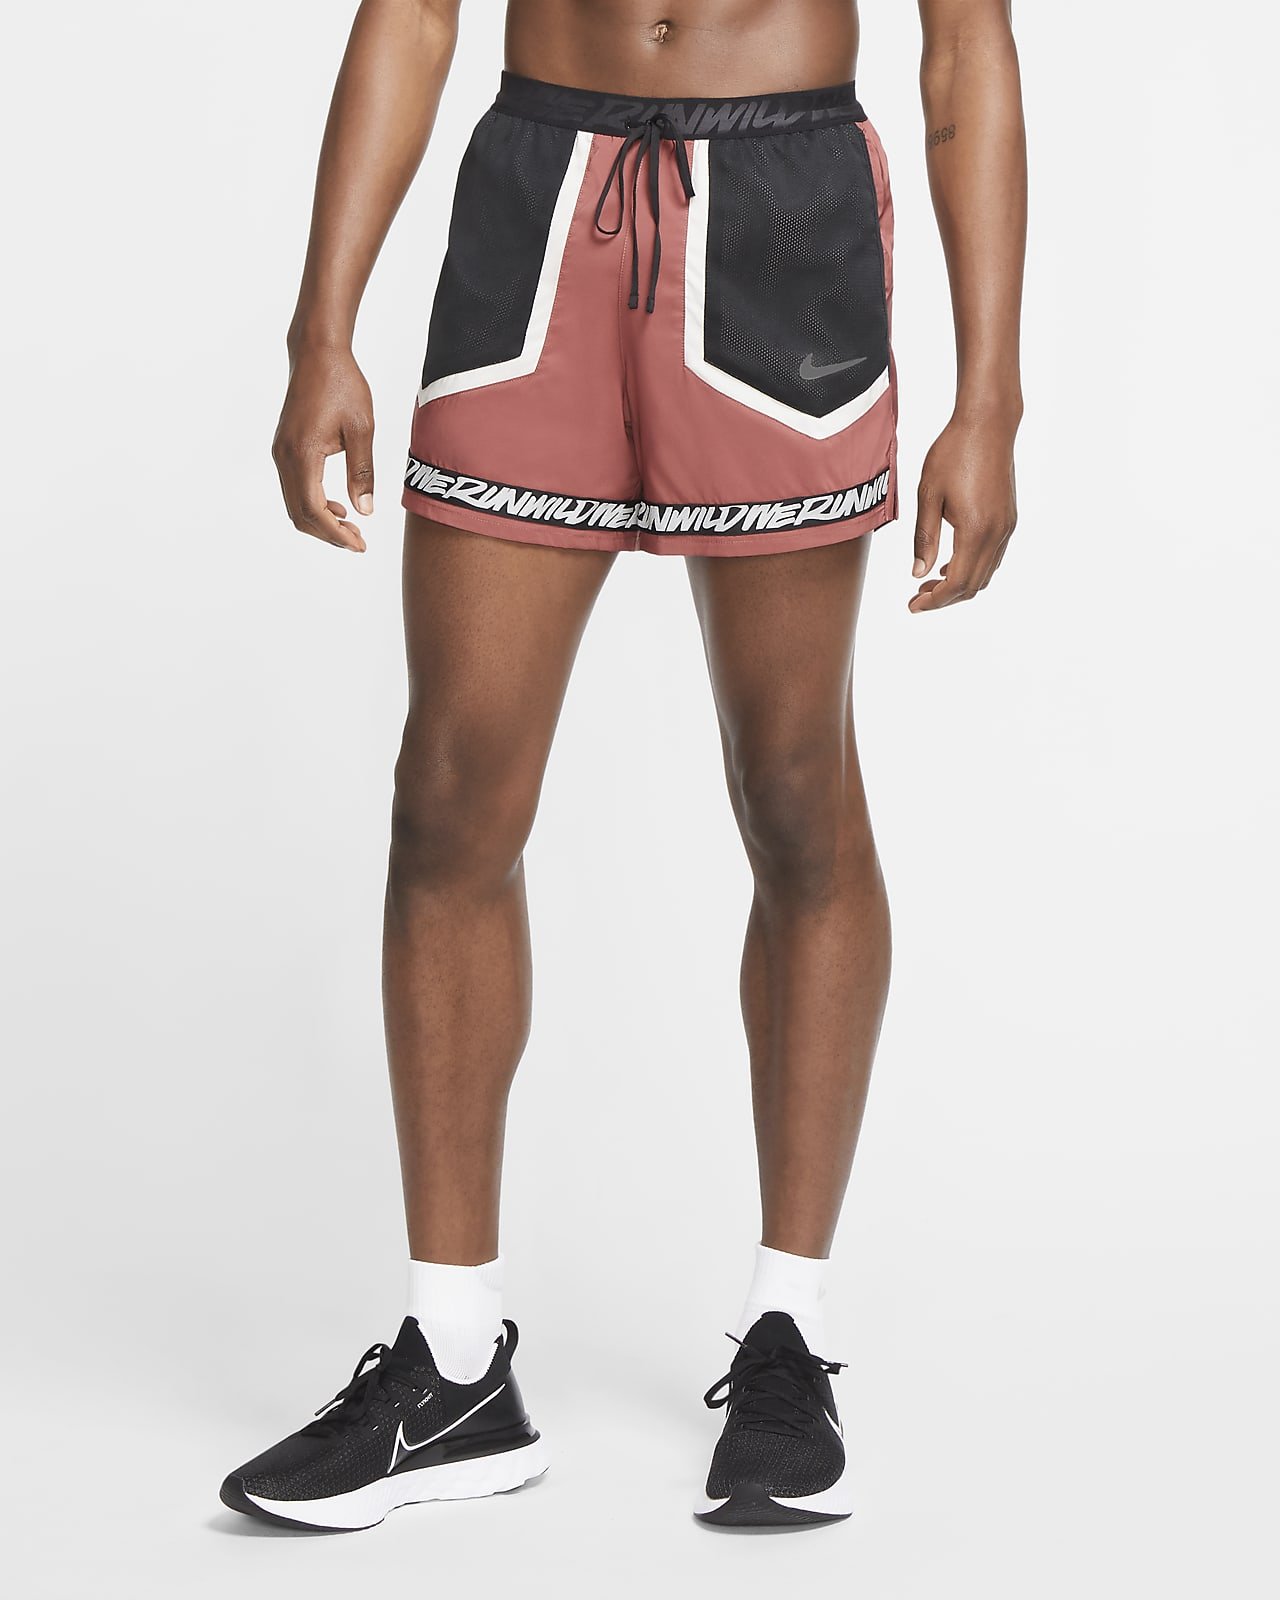 Nike Flex Stride Wild Run Men's Brief Running Shorts